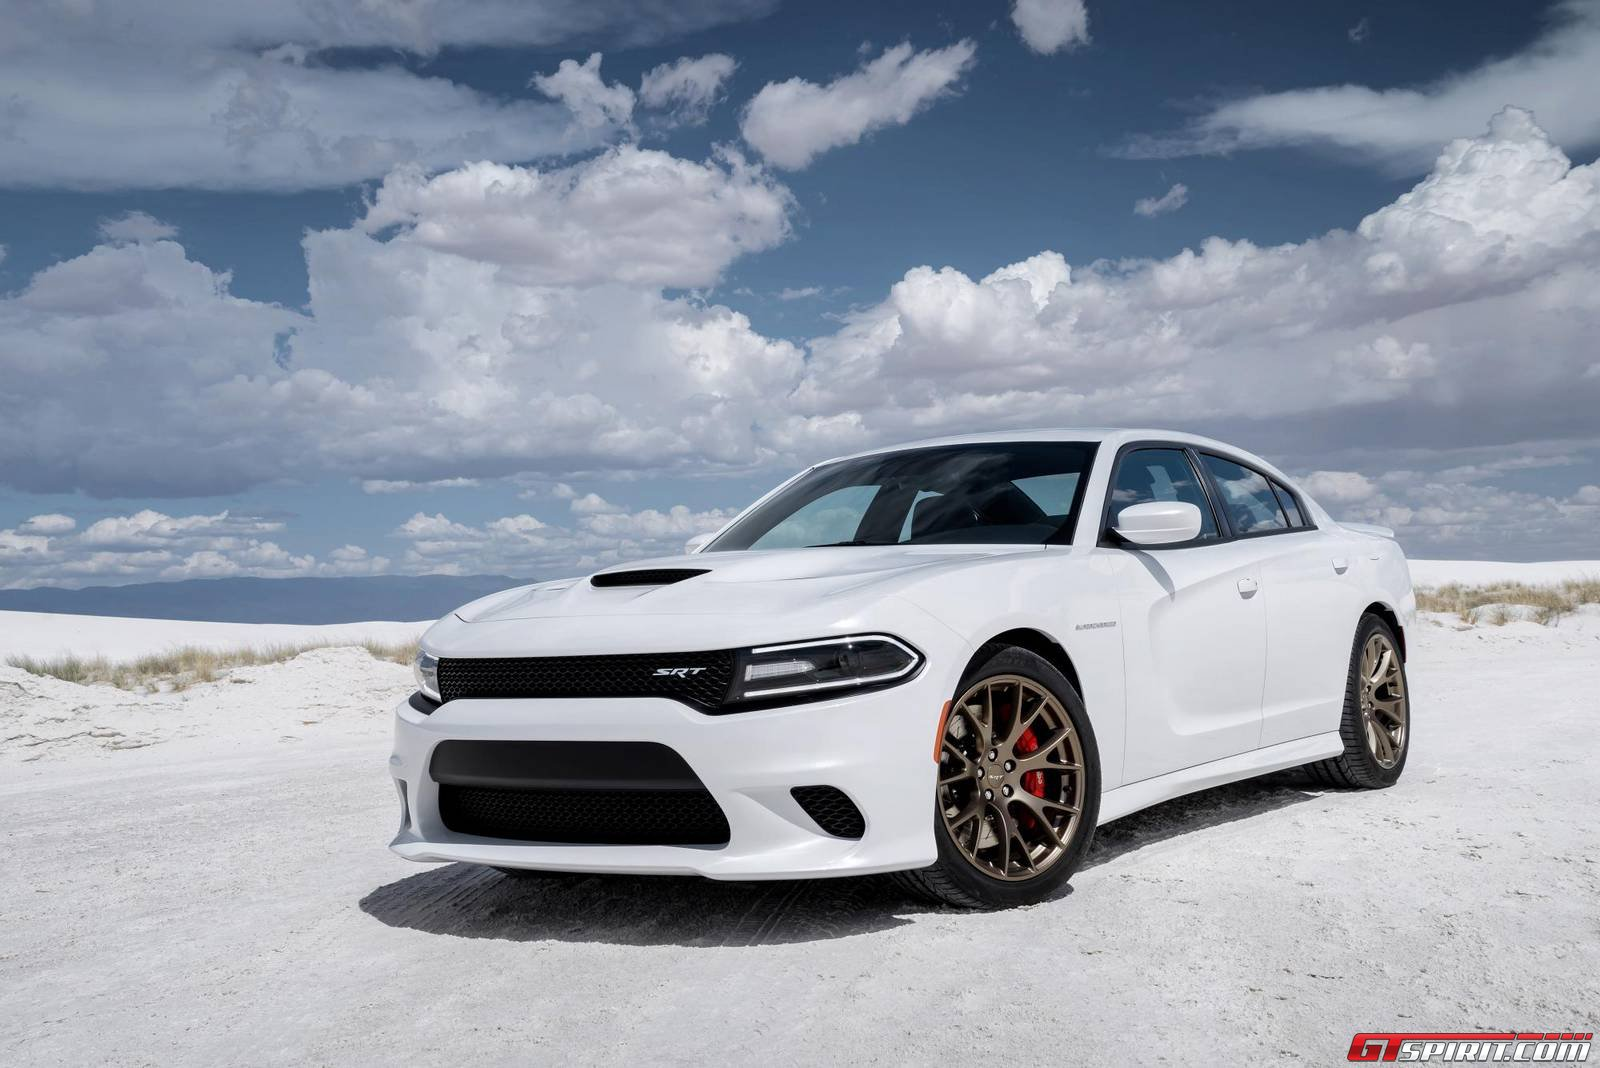 2015 Dodge Charger SRT Hellcat Fuel Economy Rated  GTspirit